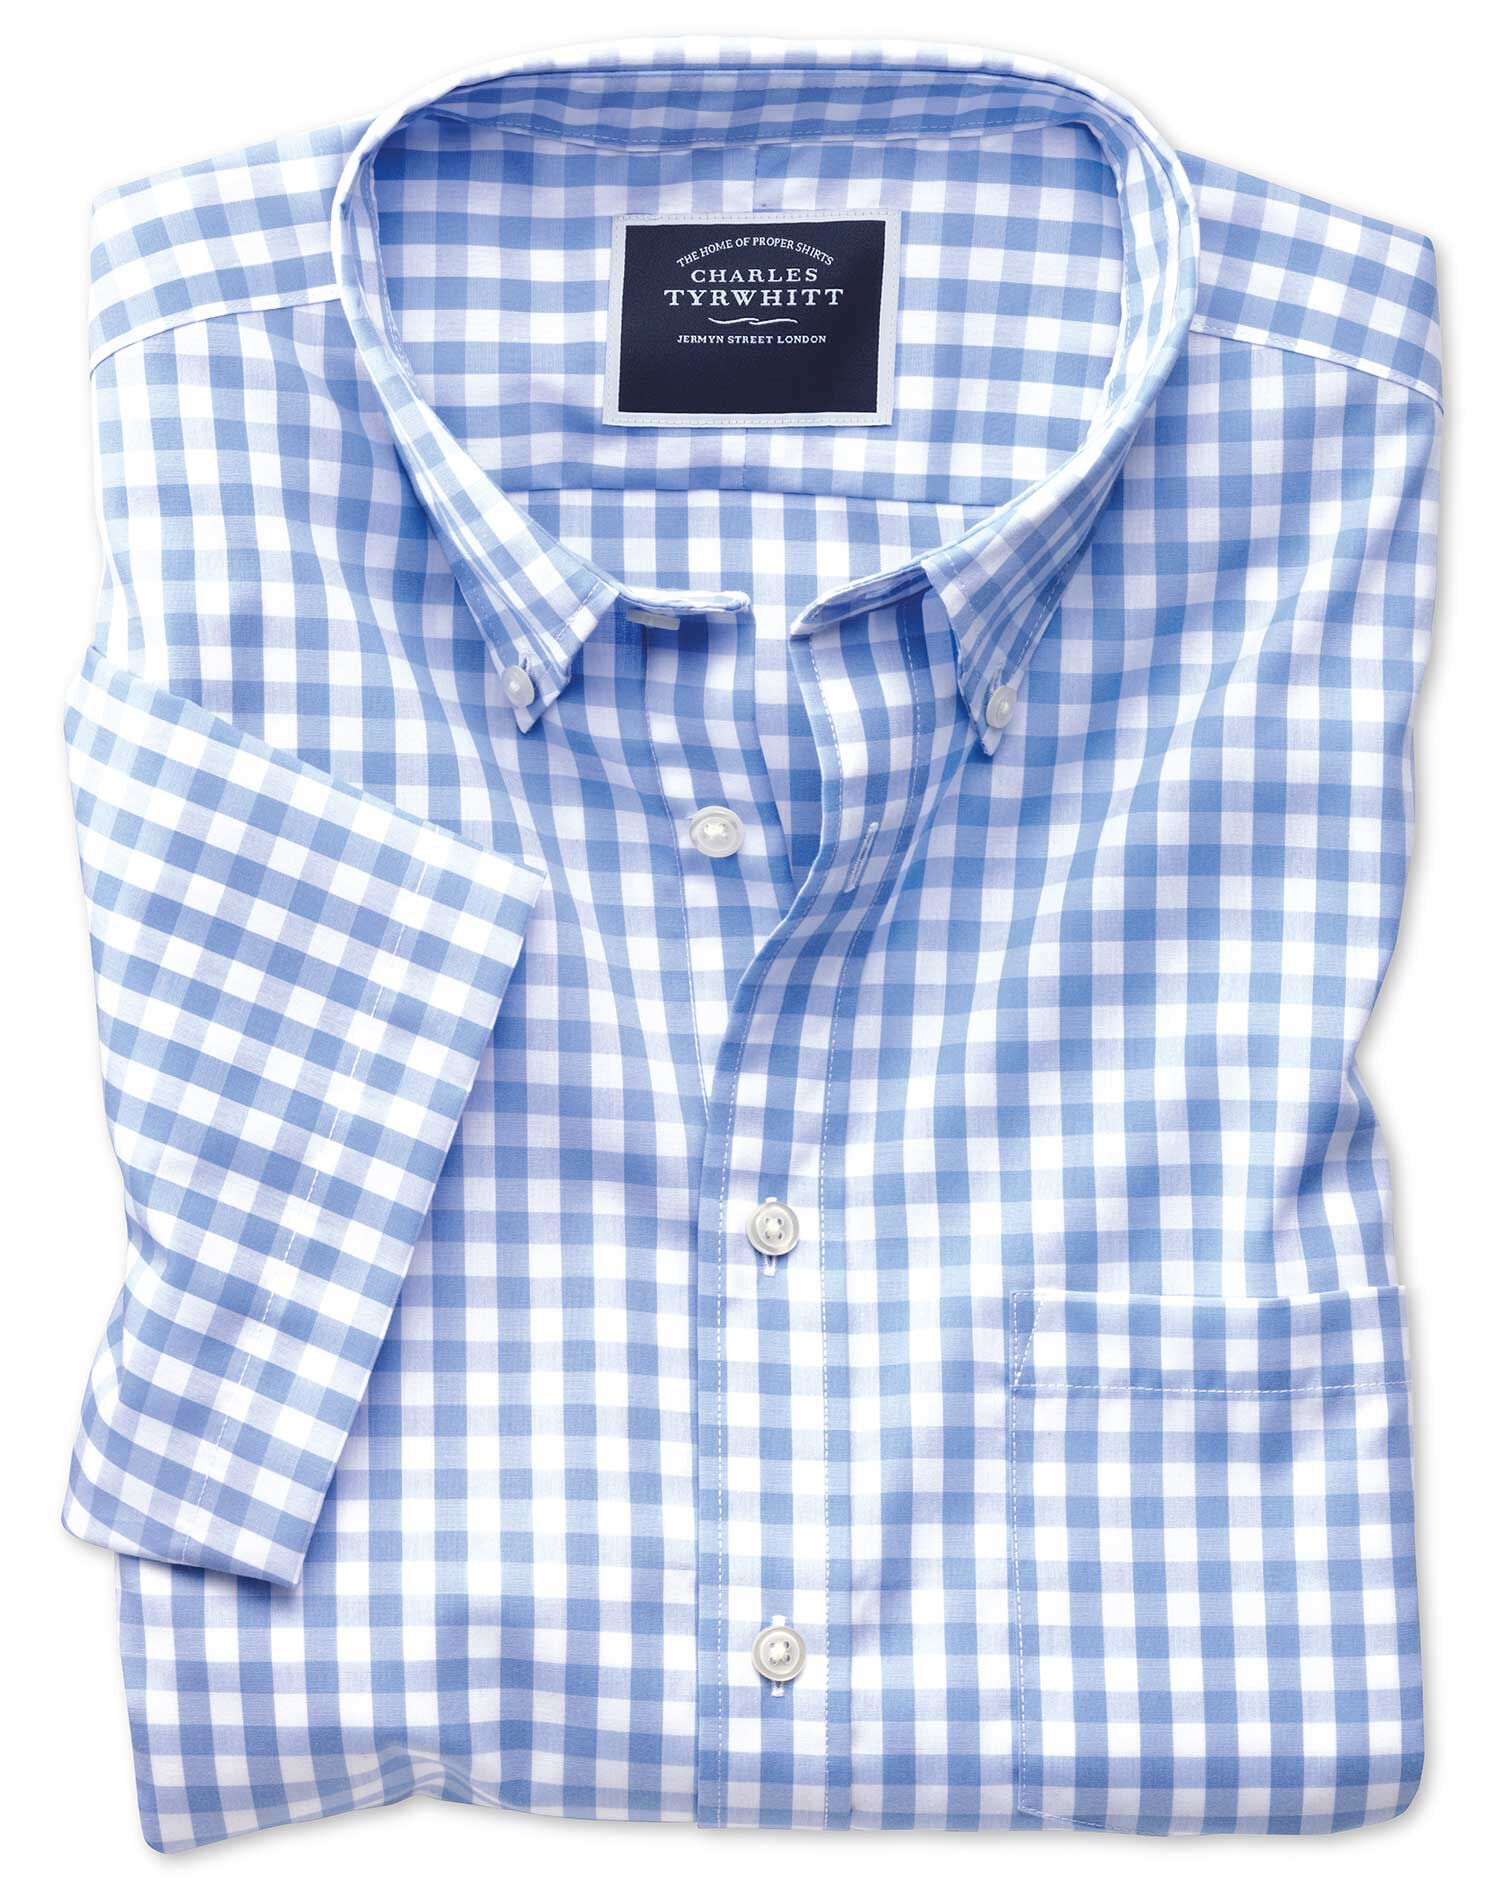 Slim Fit Button-Down Non-Iron Poplin Short Sleeve Sky Blue Gingham Cotton Shirt Single Cuff Size XL